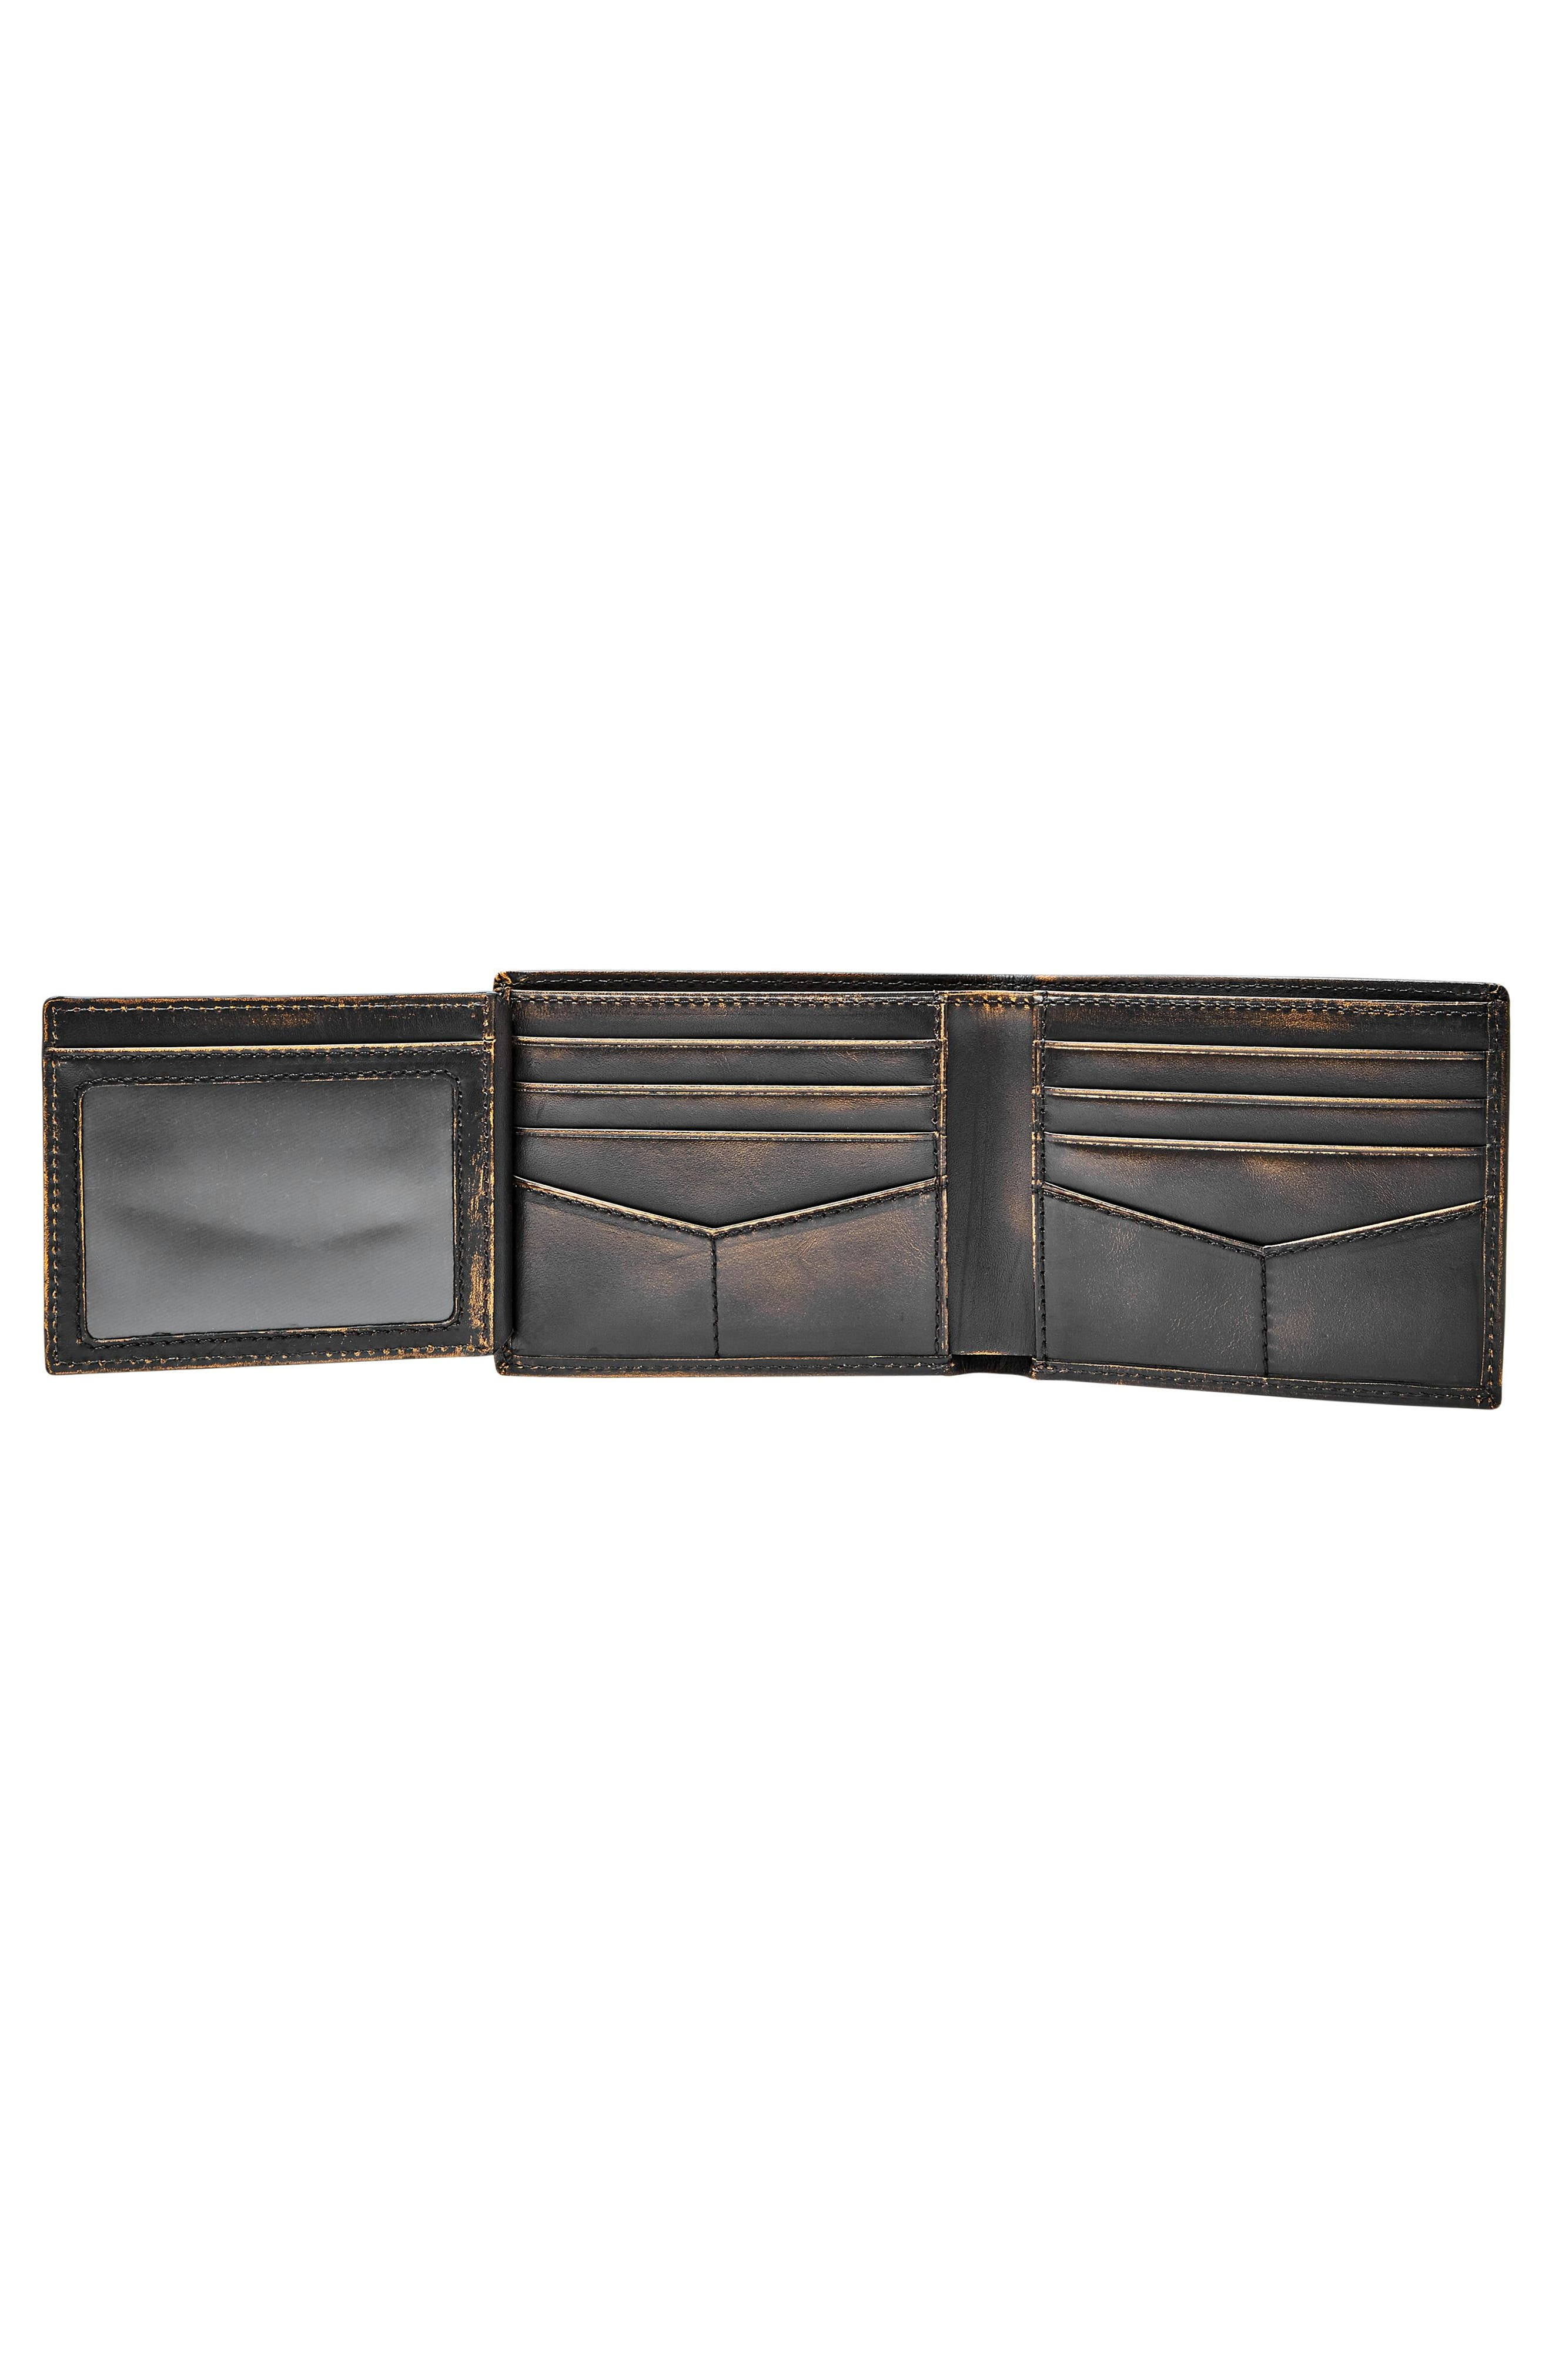 Wade Leather Wallet,                             Alternate thumbnail 3, color,                             Black